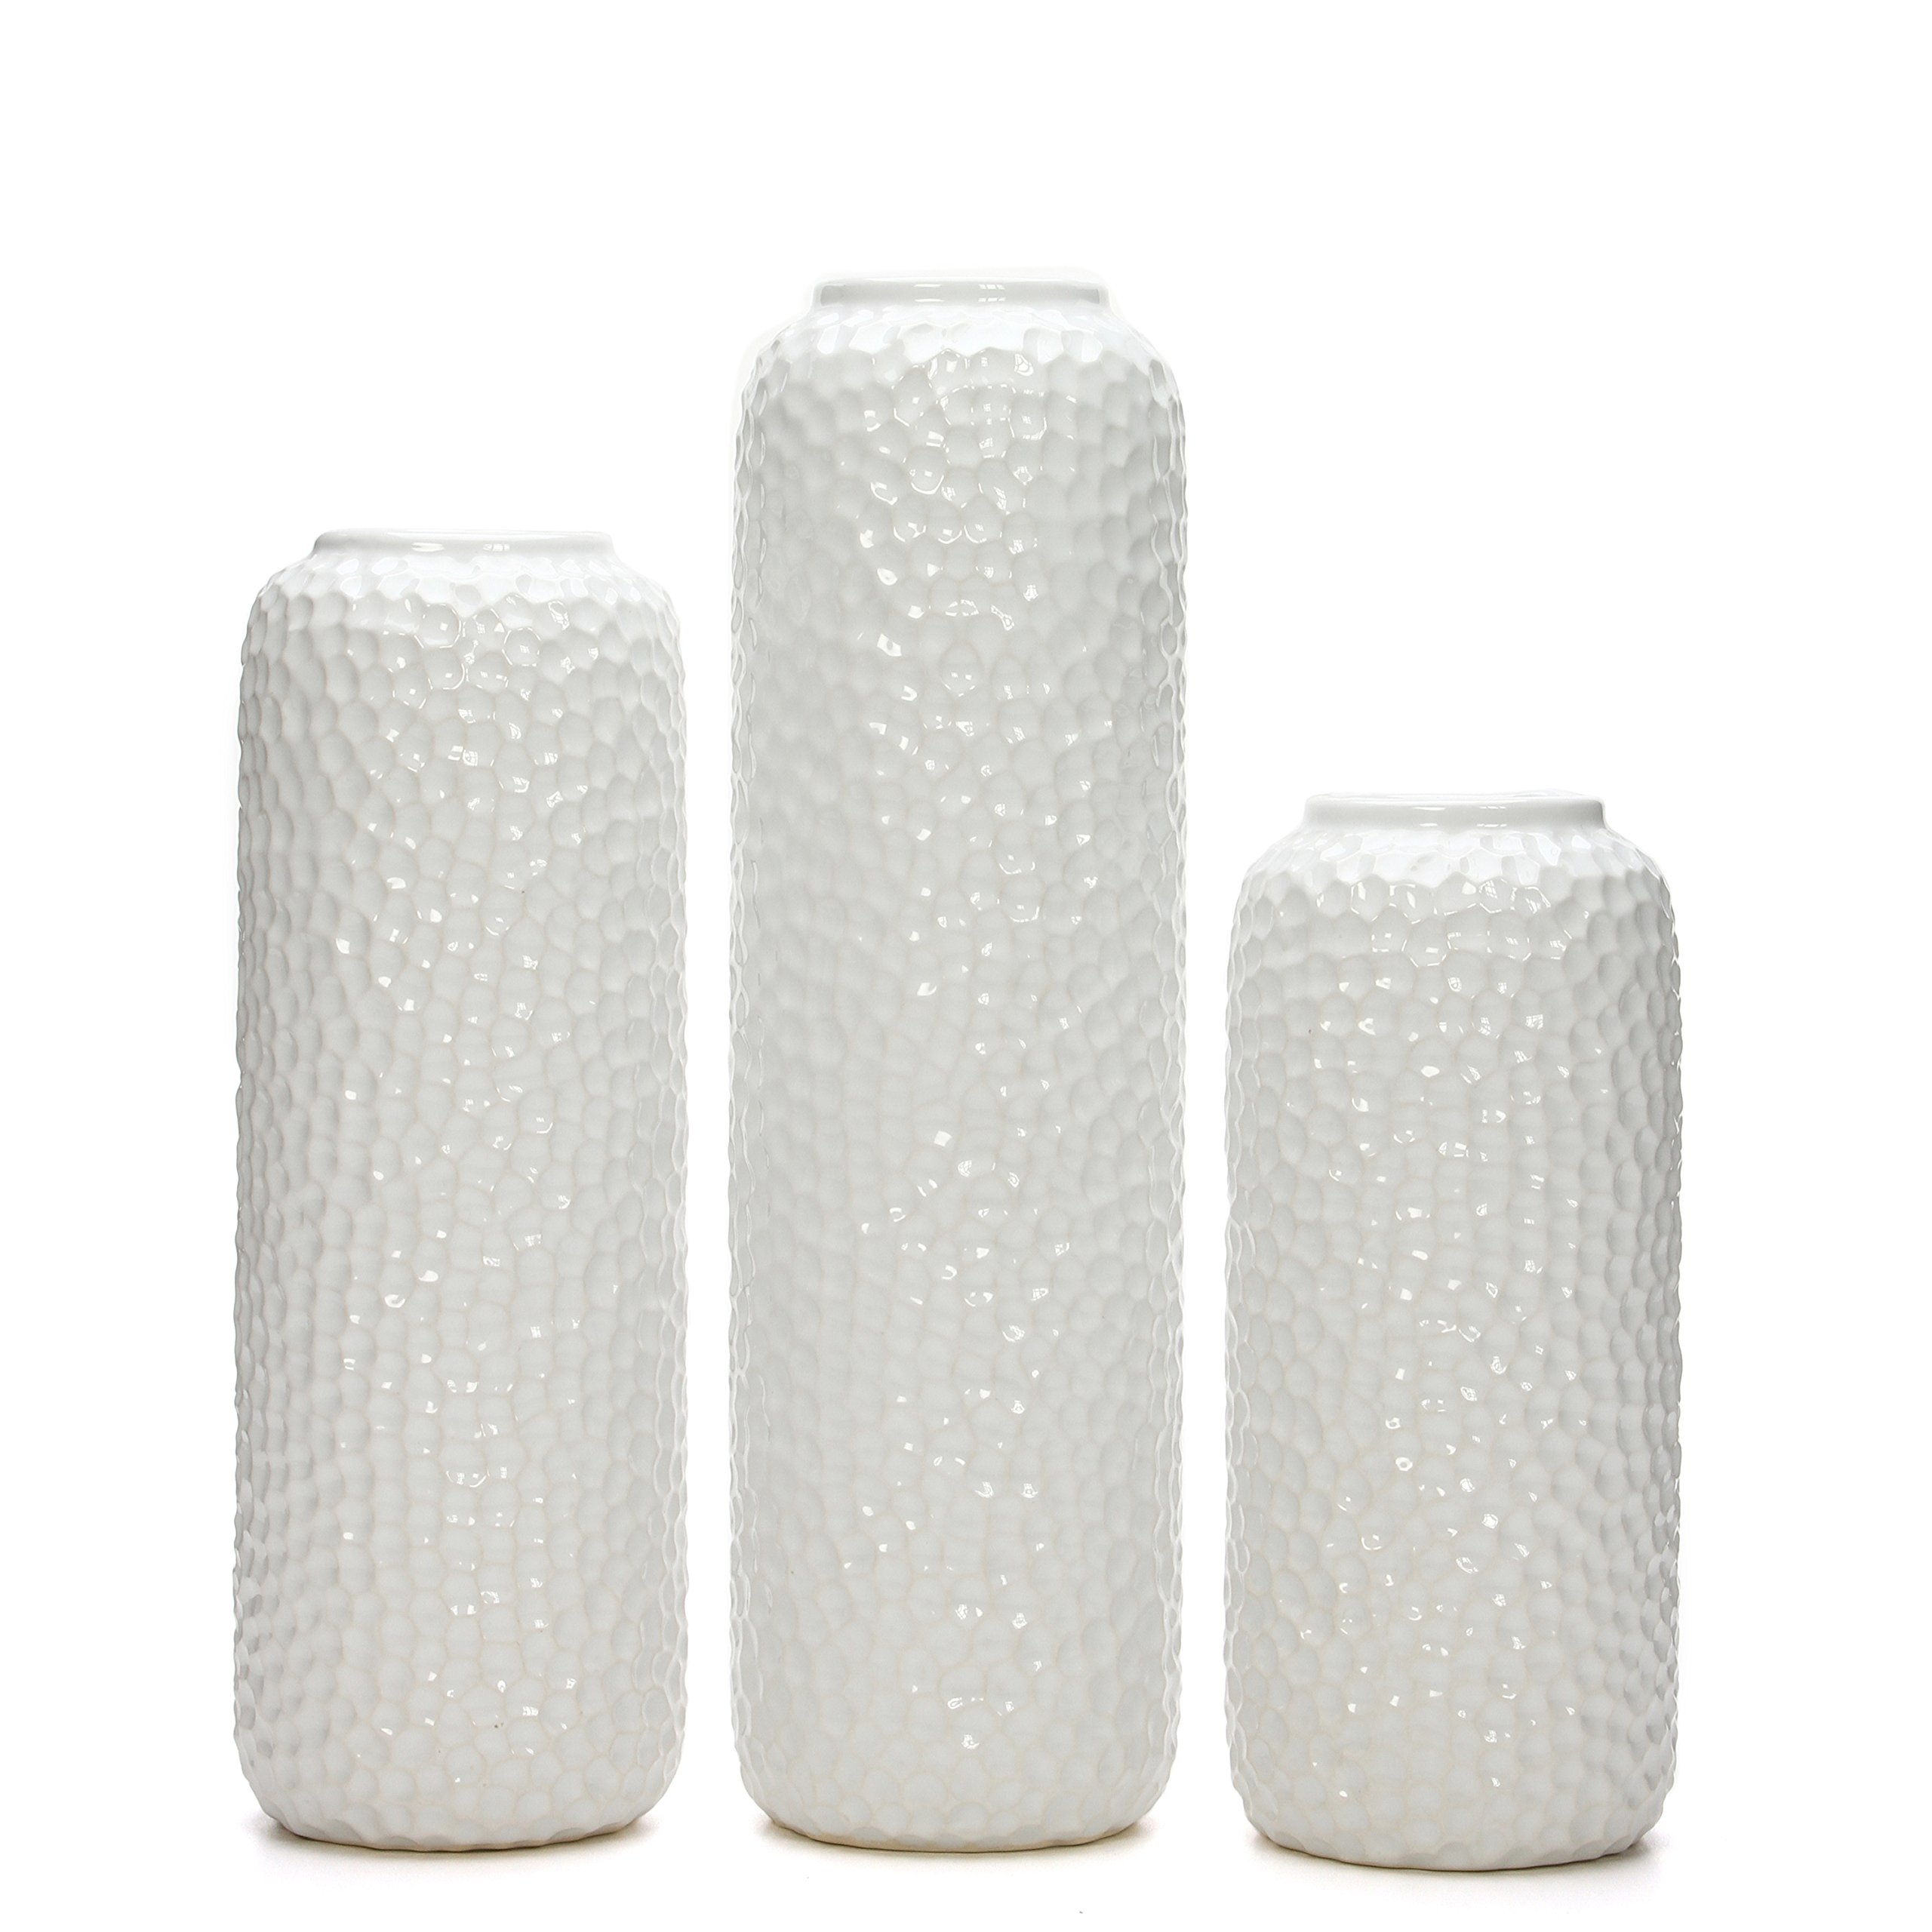 Hosley Set of 3 White Ceramic Honeycomb Vase- Tall 12'', Medium 10'', Short 8'' High Each. Ideal Gift for Wedding, Special Occasion, Dried Floral Arrangements, Home, Office, Spa O4